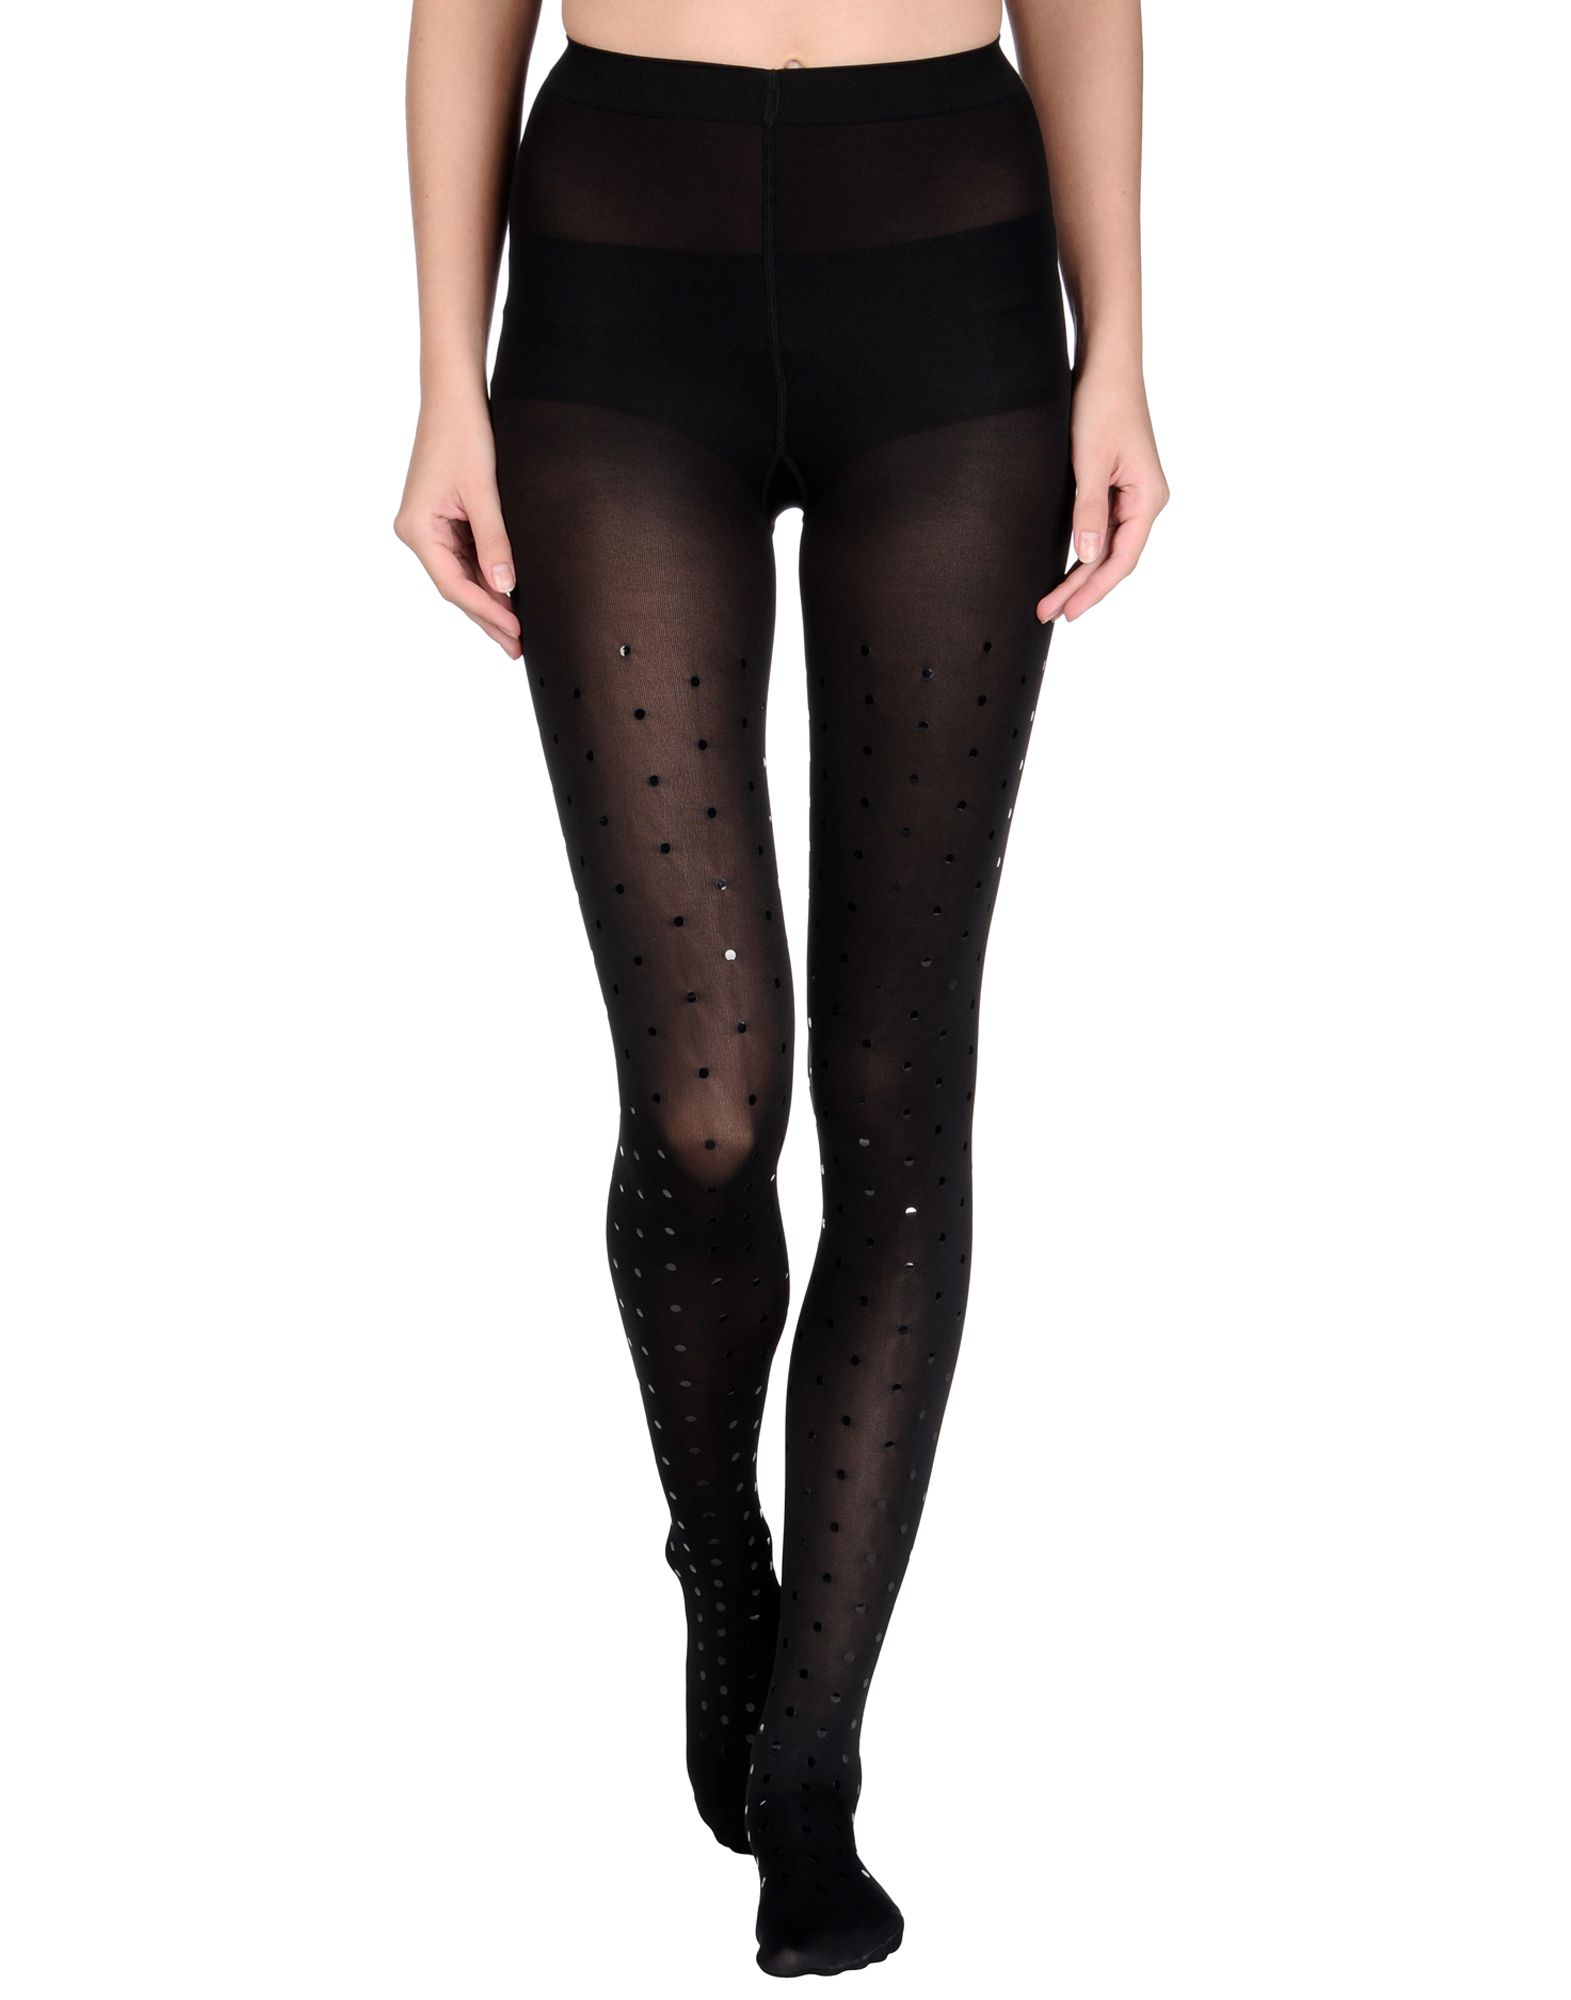 black single women in wolford We have a superb range of designer tights and other hosiery for women from leading brands at fantastic prices free uk delivery available.